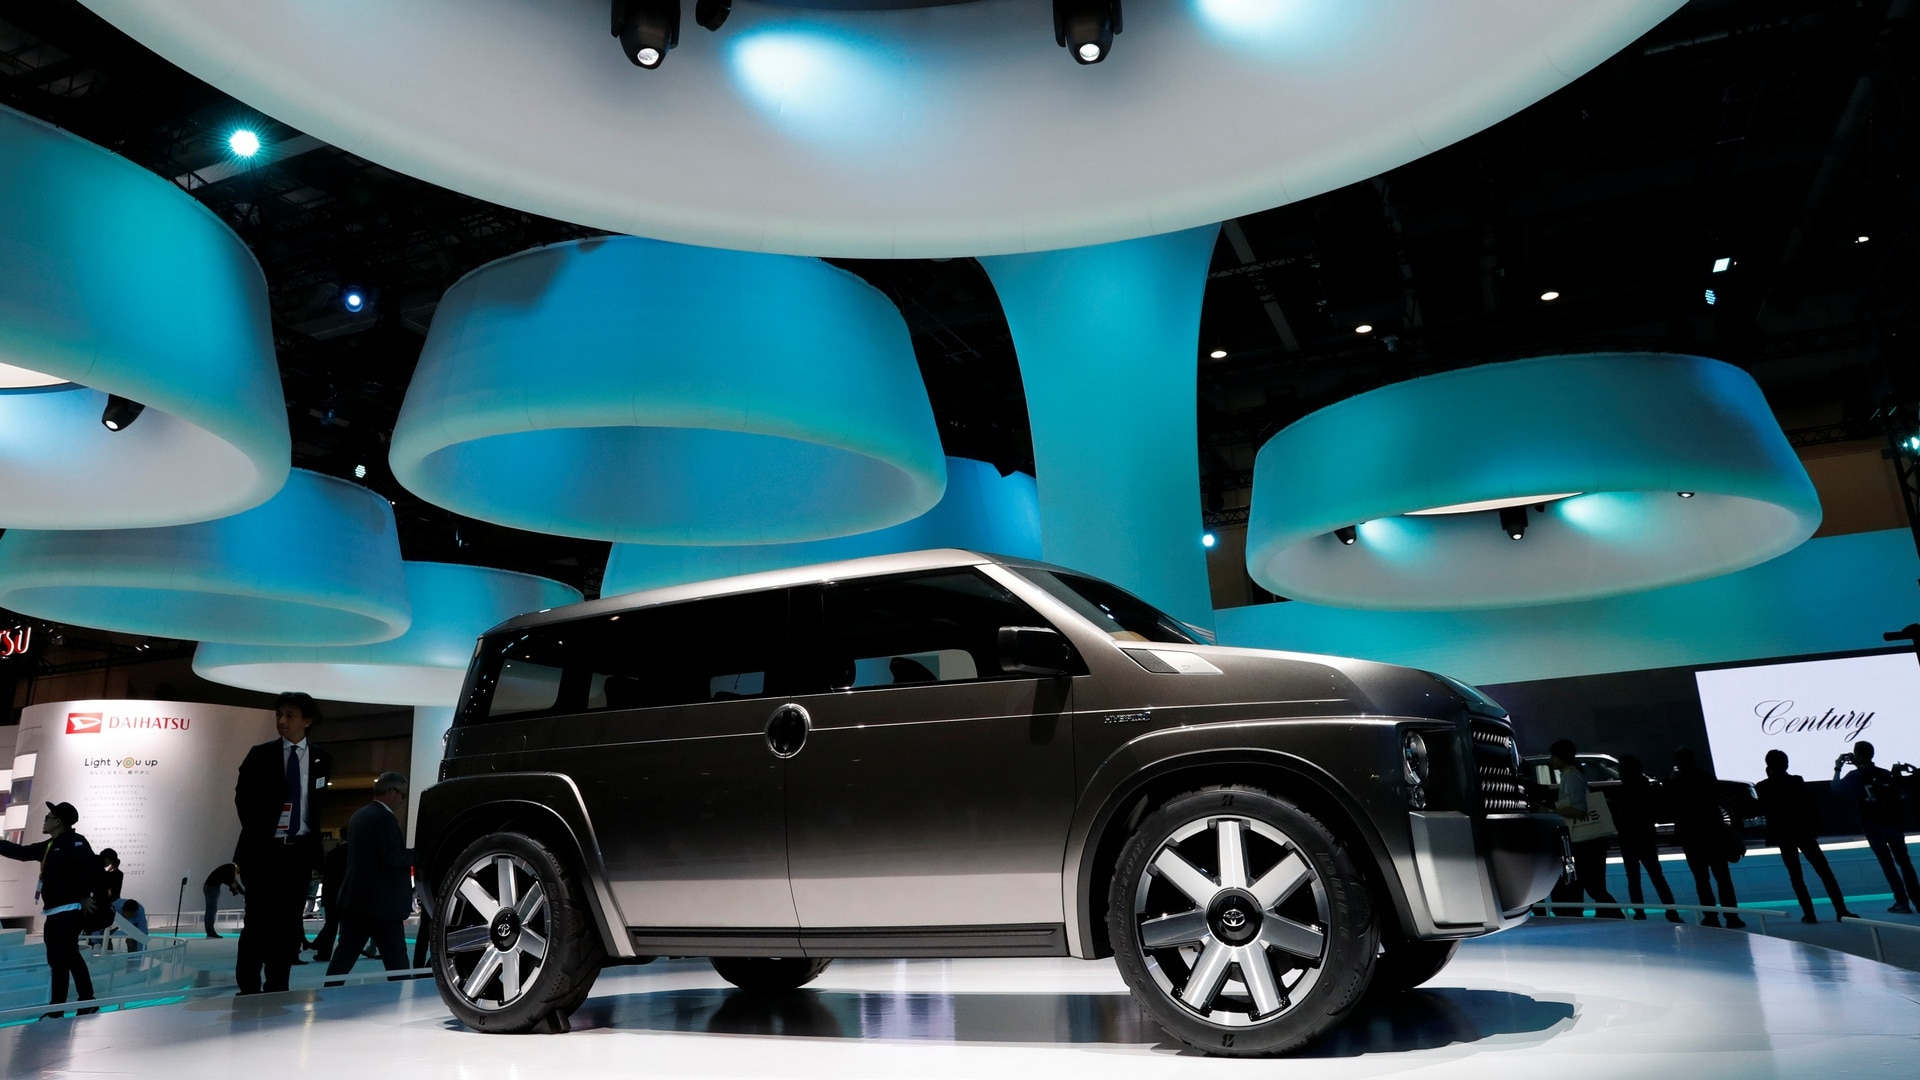 Toyota Motor showcase the TJ Cruiser during media preview of the 45th Tokyo Motor Show in Tokyo. Reuters